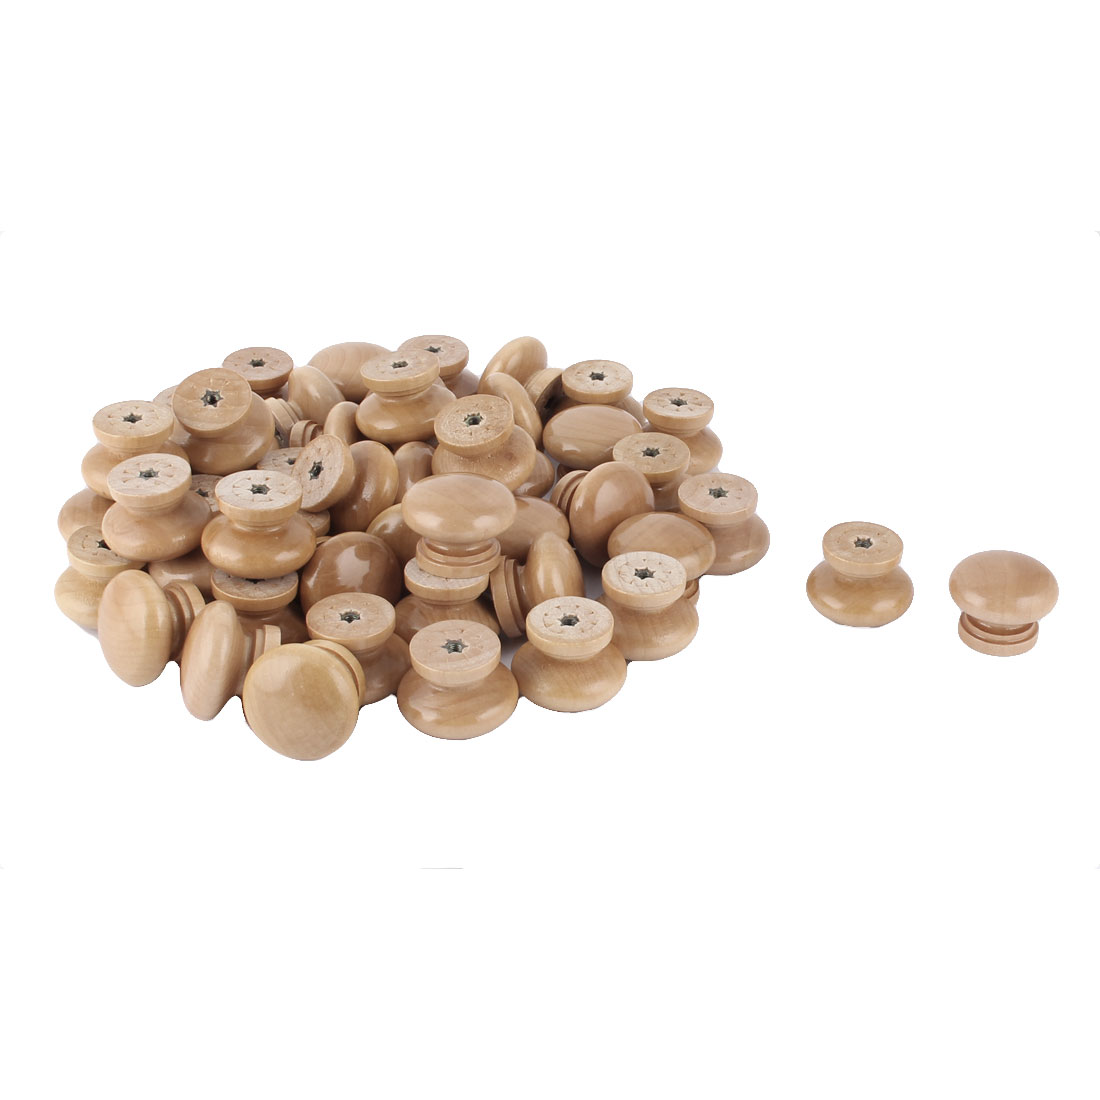 Home Office Kitchen Wooden Round Shaped Cabinet Drawer Pull Knob Handle 50 Pcs